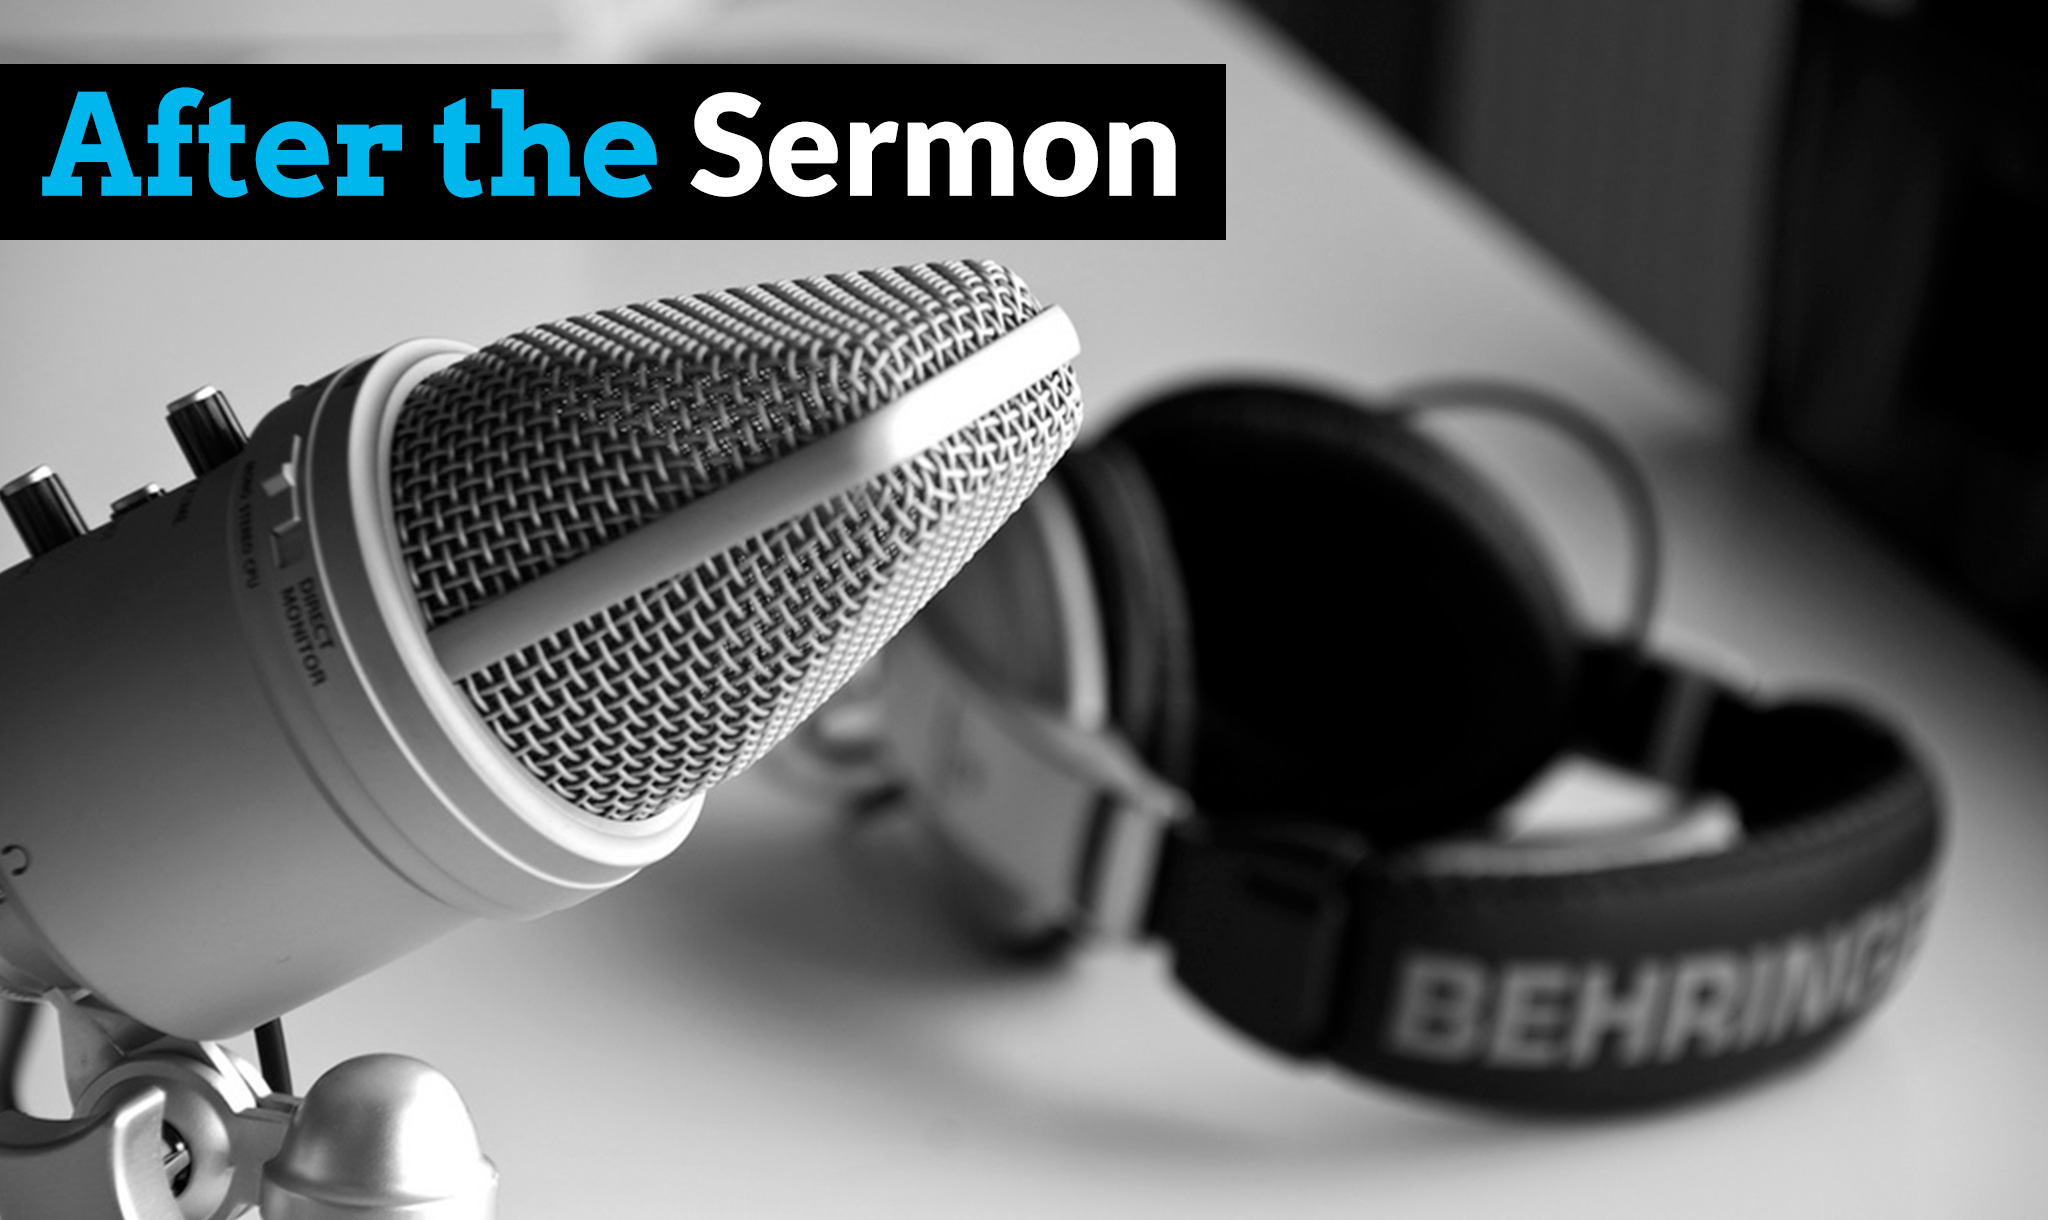 after-the-sermon-graphic